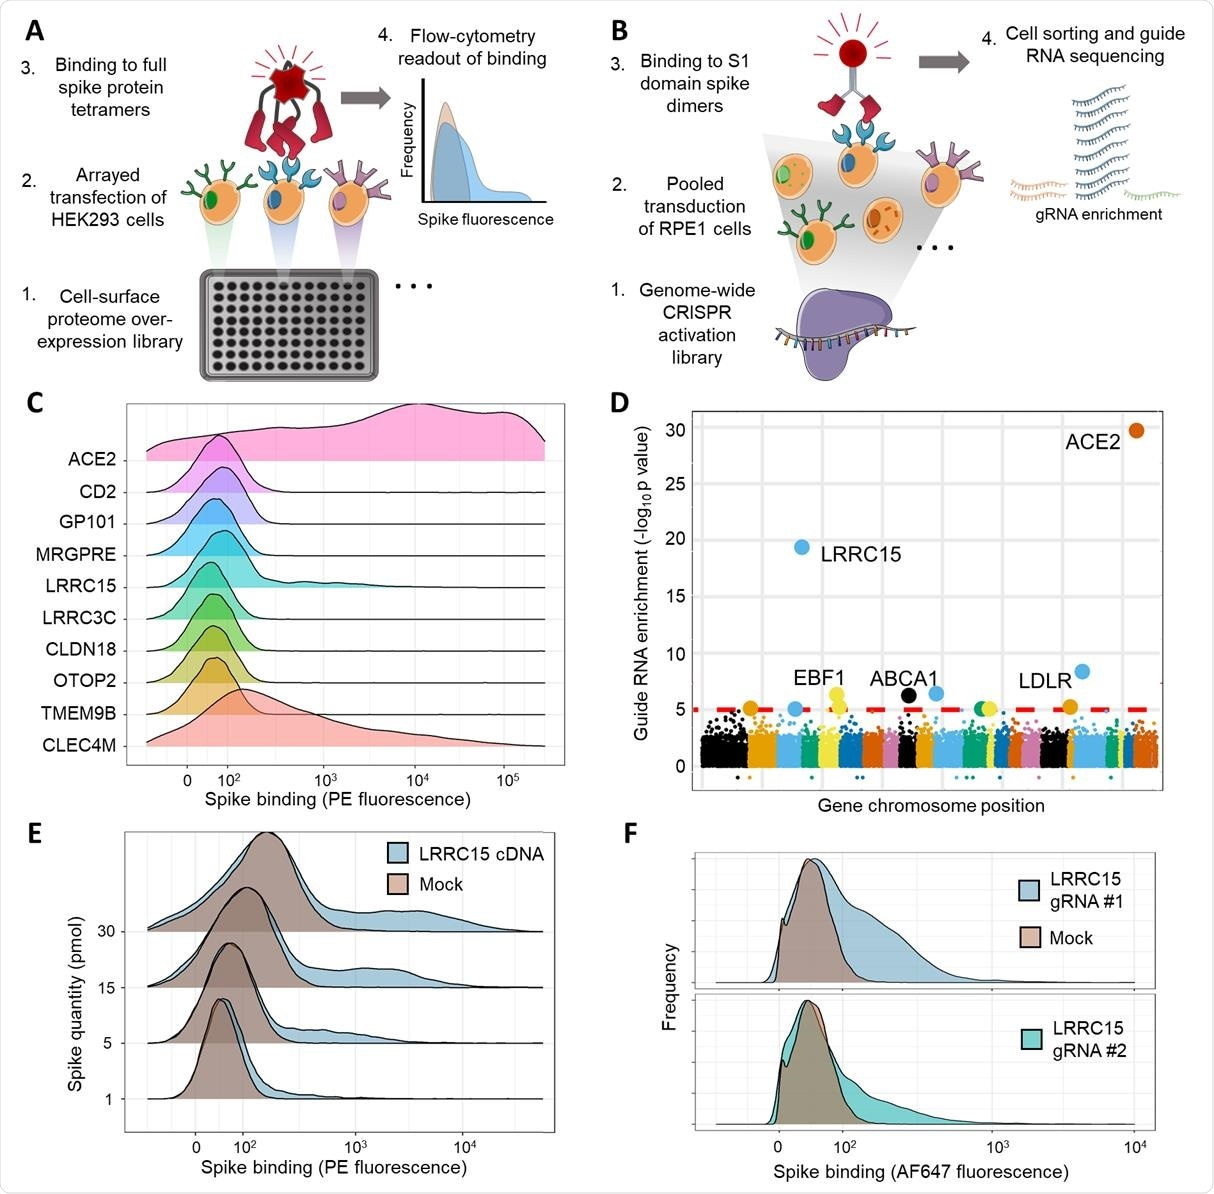 Arrayed transmembrane protein screening and pooled genome-wide CRISPR activation screening identify LRRC15 as binding SARS-CoV-2 spike protein. (A) Schematic of arrayed cell-based screening to identify host factors that cause SARS-CoV-2 spike protein binding. HEK293 cells were transfected in individual wells of microtiter plates with full-length cDNA constructs encompassing a near-comprehensive library of human membrane proteins. Each well in the array was tested for binding to fluorescent tetramers of full-length SARS-CoV-2 spike by flow cytometry. (B) Schematic of pooled CRISPR activation screening. RPE1 cells expressing a SunTag CRISPRa system were transduced with guide RNAs to activate transcription of all genes in the human genome. Cells that bound to Fc protein fusions of the spike S1 domain were sorted by FACS and sequenced to measure guide RNA enrichment.